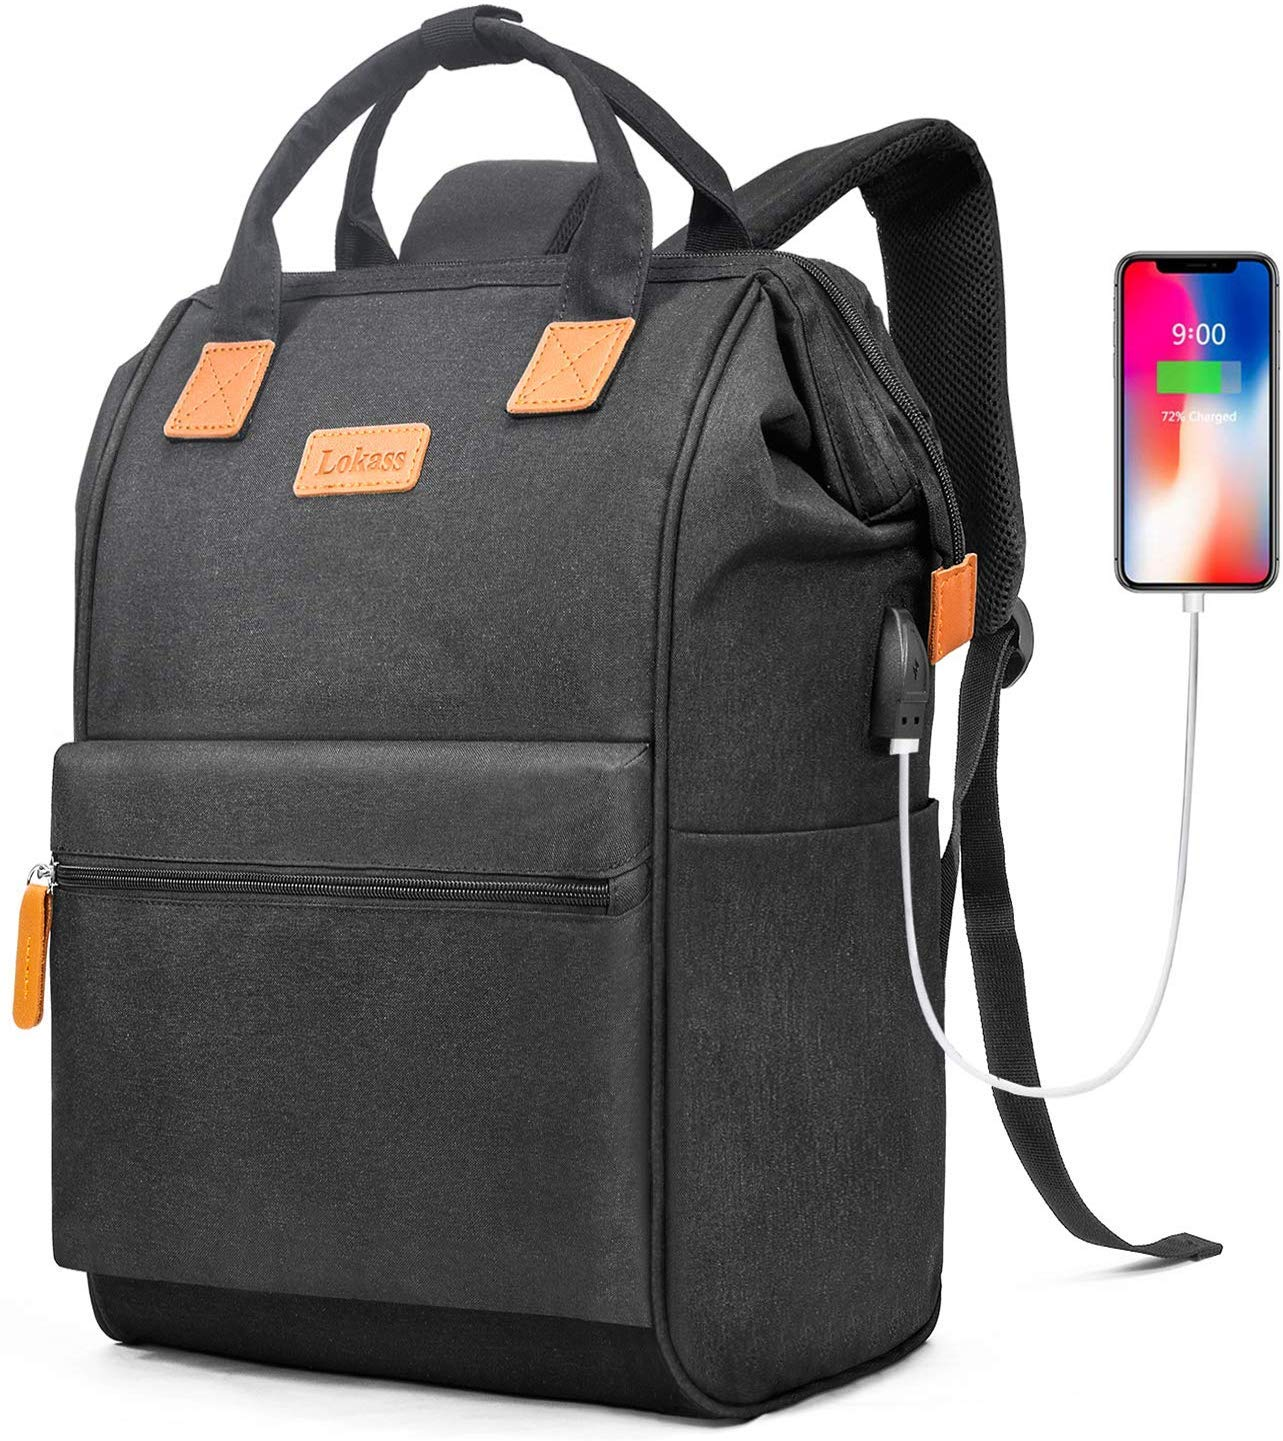 BRINCH Laptop Backpack 17.3 Inch Wide Open Computer Backpack Laptop Bag College Rucksack Water Resistant Business Travel Backpack Multipurpose Casual Daypack with USB Charging Port for Women Men,Black